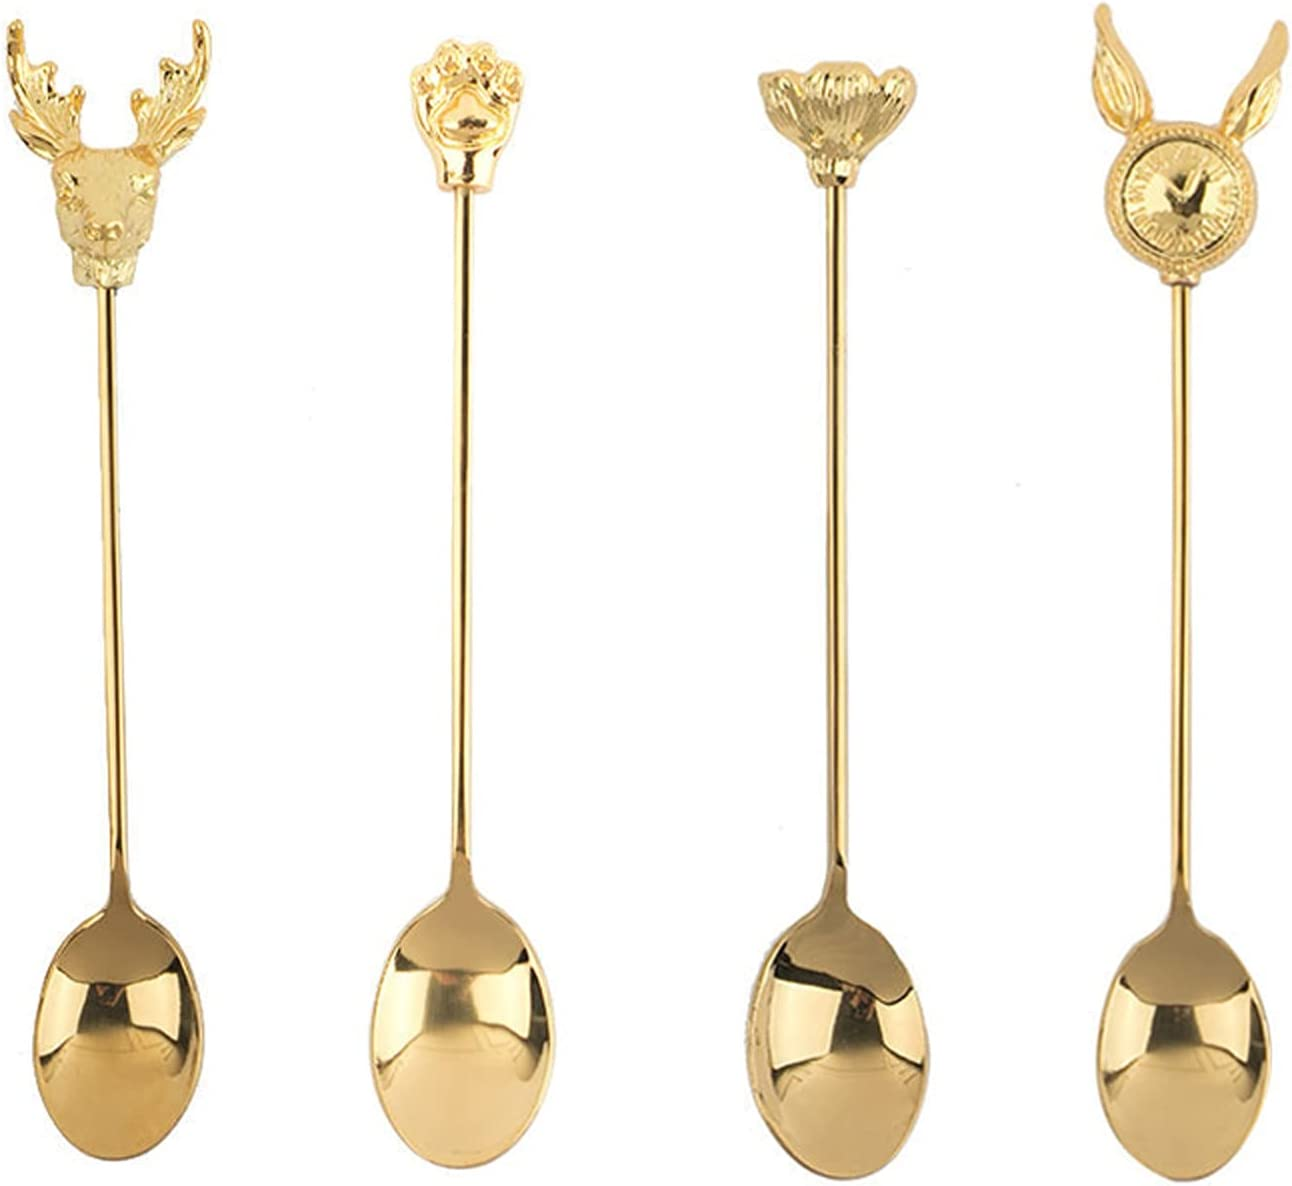 Cooking spoon Stainless Steel Small Spoon Set - Gold Max 63% Finally resale start OFF Creati 4 of